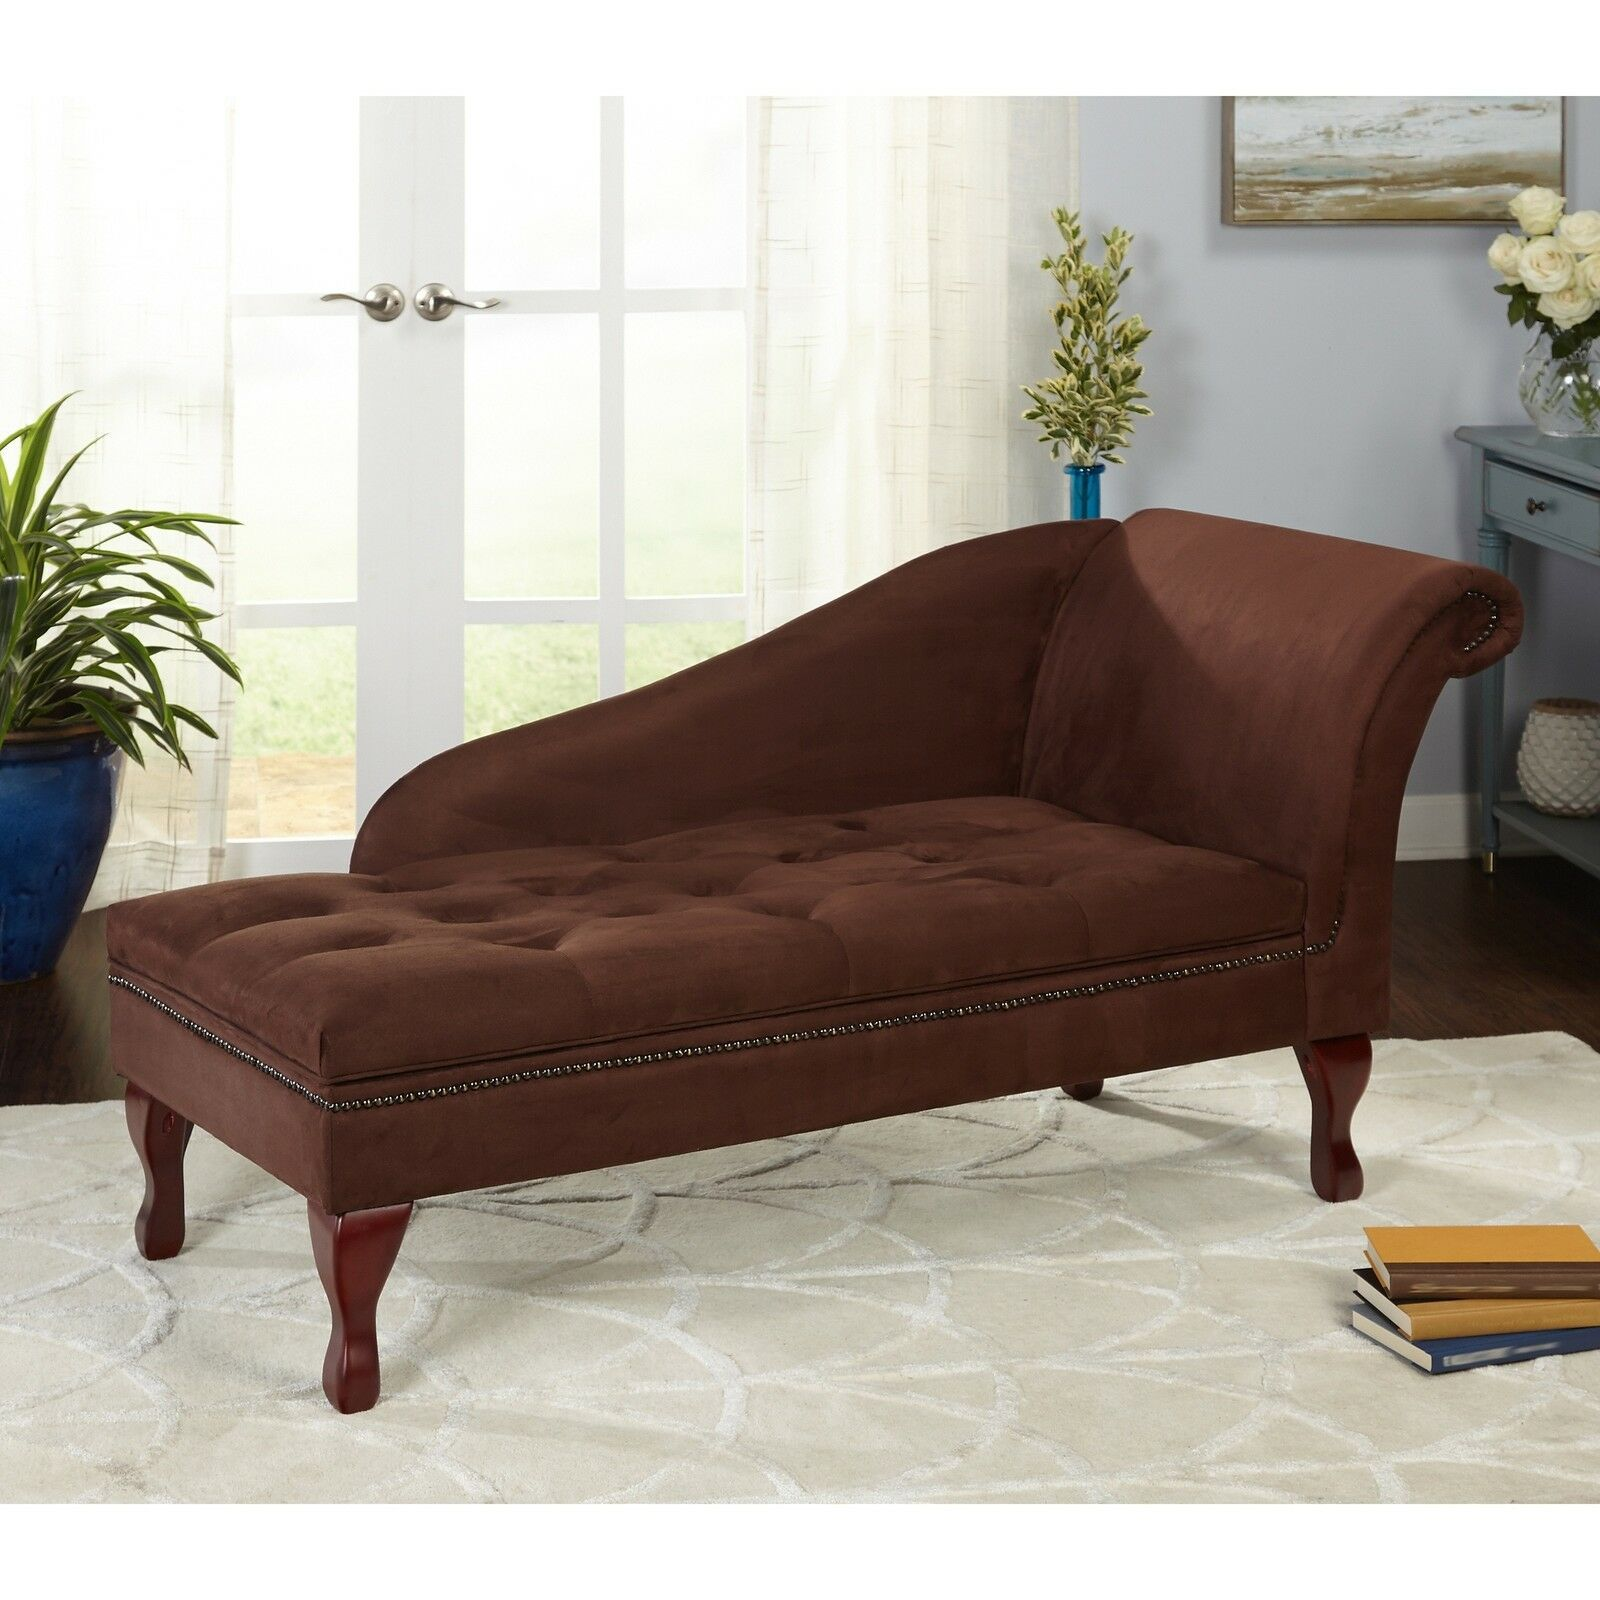 Brown Chaise Lounge Chair Seating Tufted Cushion Home Living Room